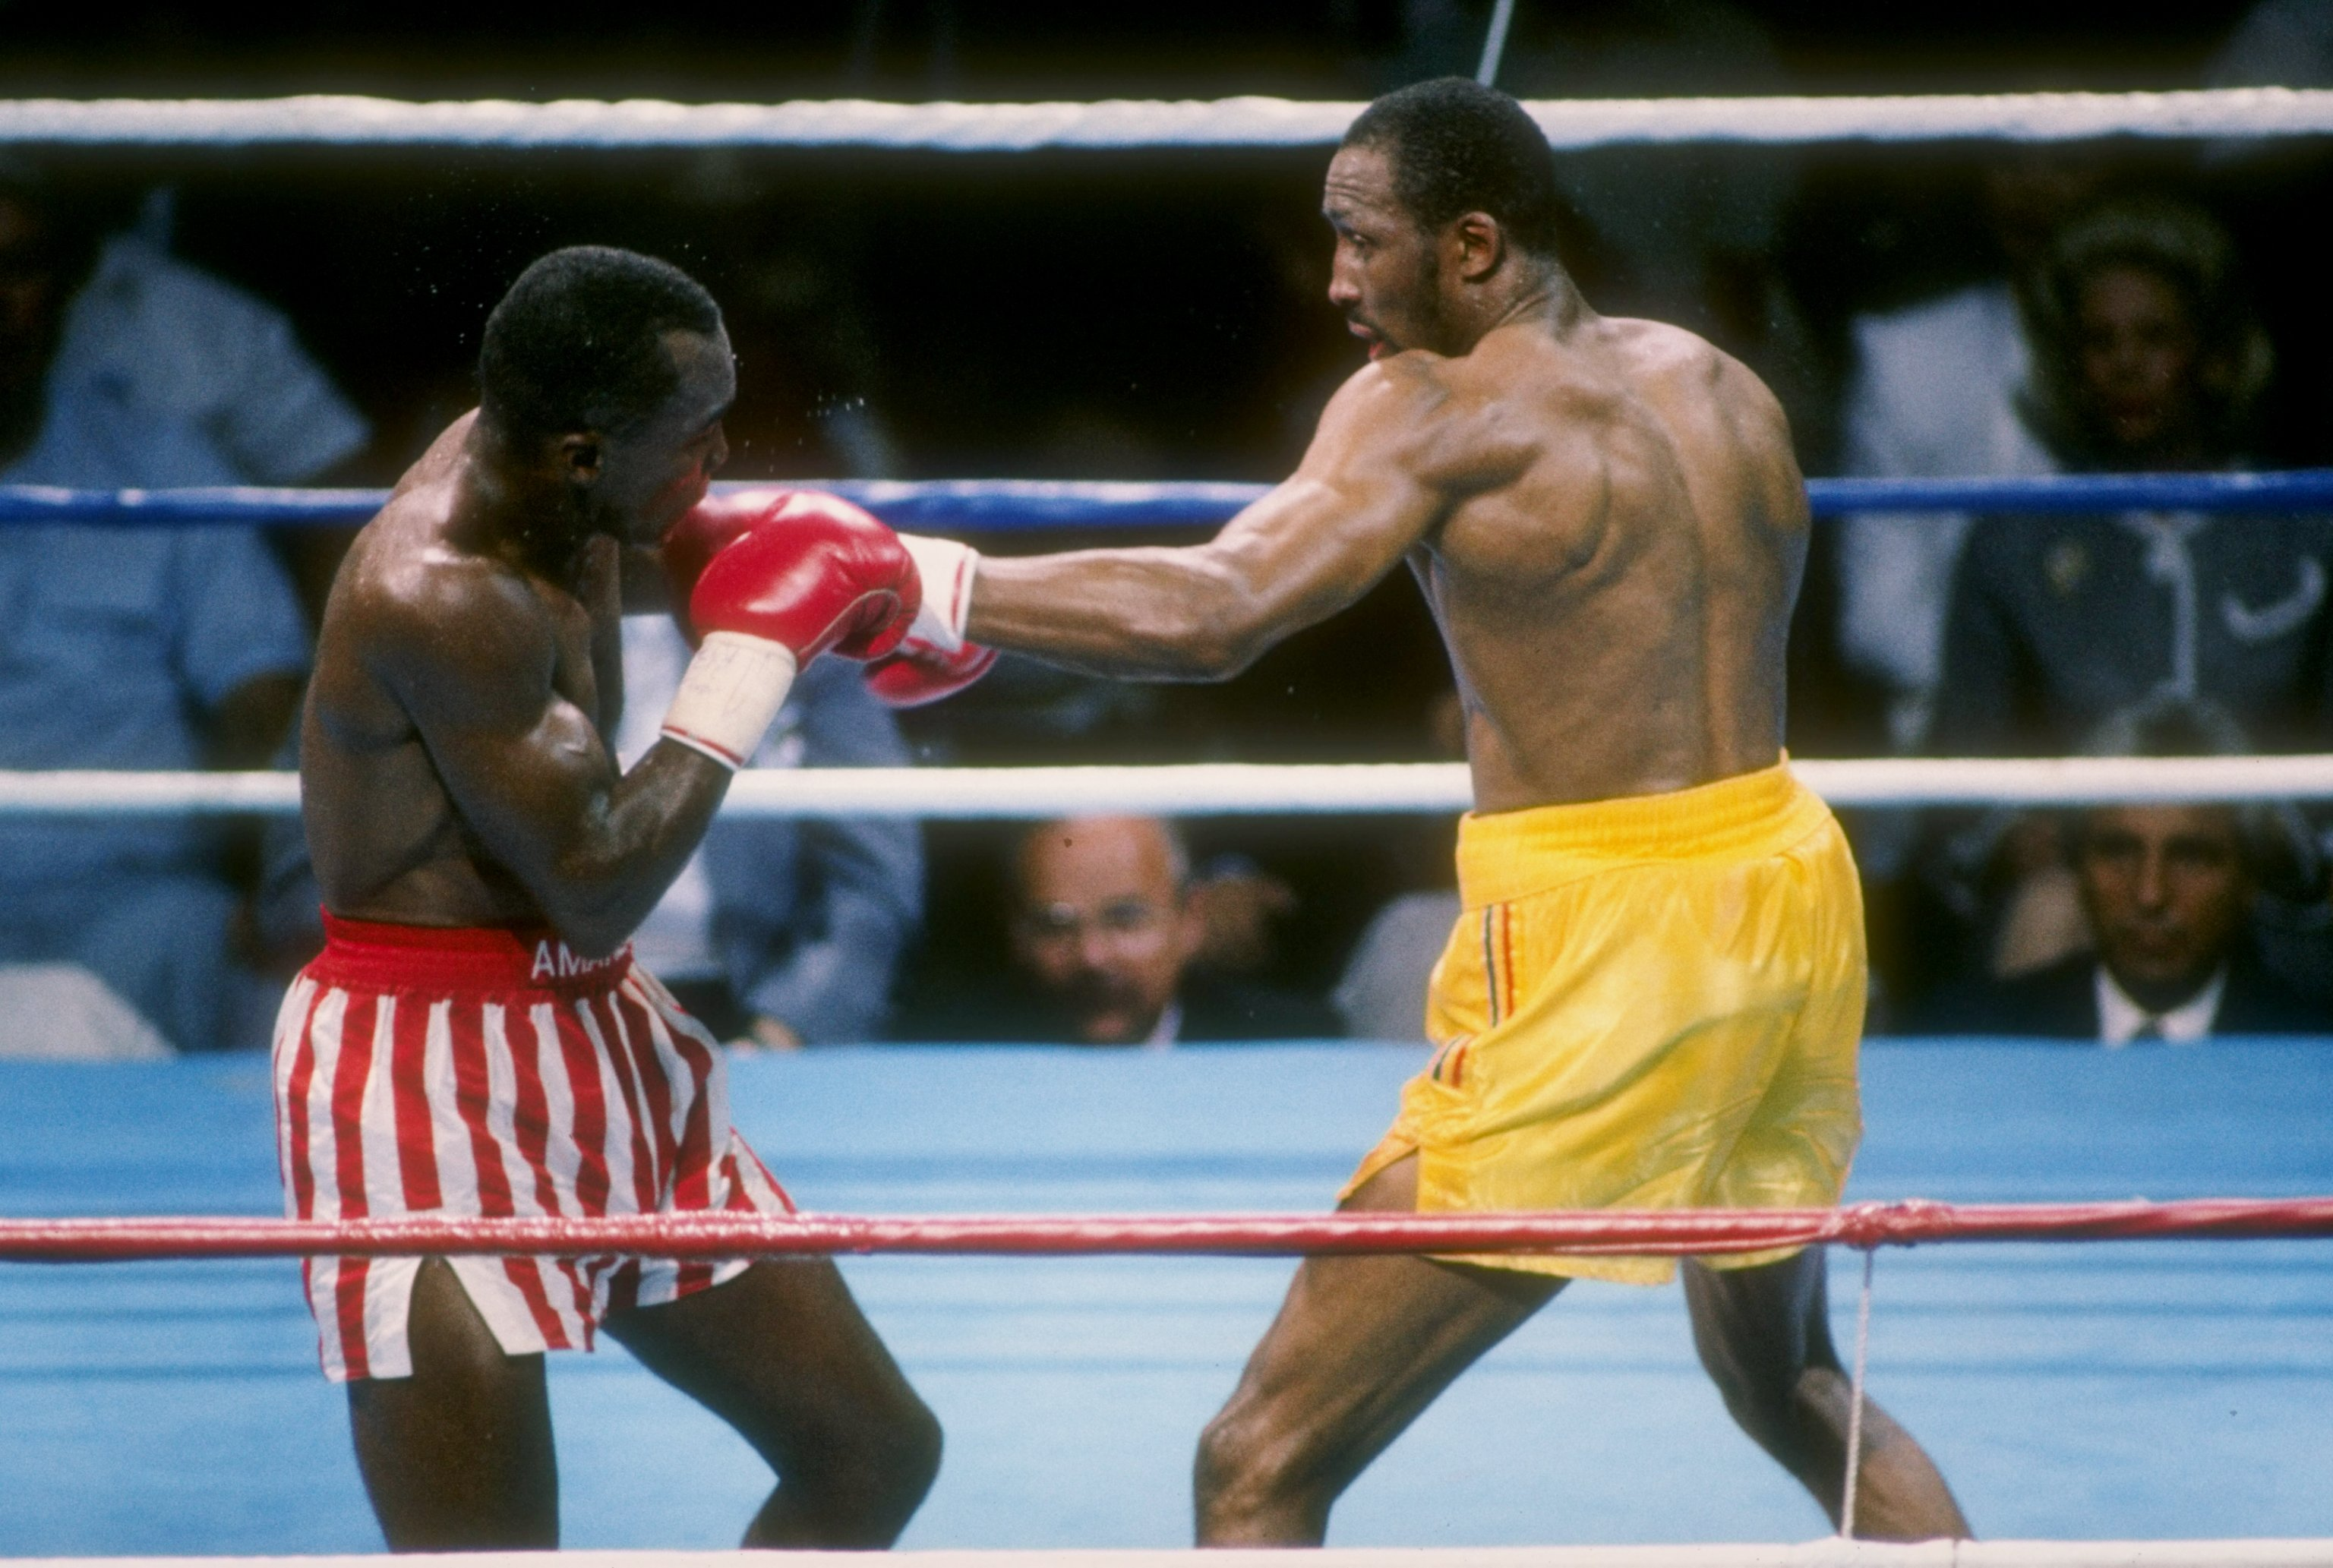 LAS VEGAS - JUNE 12: Sugar Ray Leonard competes with Thomas Hearns for the WBC Super Middleweight Title, in a bout schedule for twelve rounds at the Caesars Palace on June 12, 1989 in Las Vegas, Nevada. The fight ended in a draw. Mandatory Credit: Mike Po